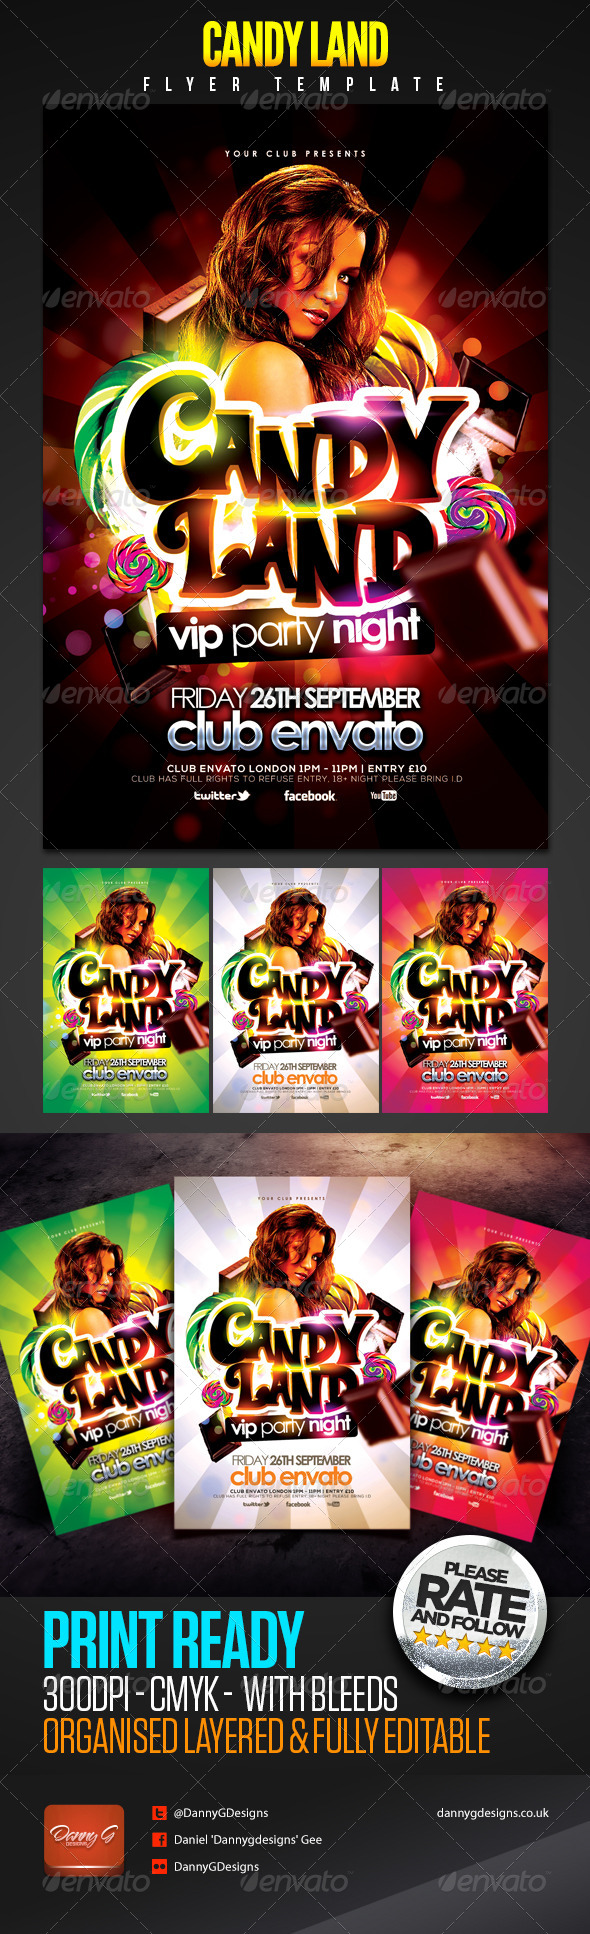 Candy Land VIP Party Night Flyer Template - Clubs & Parties Events